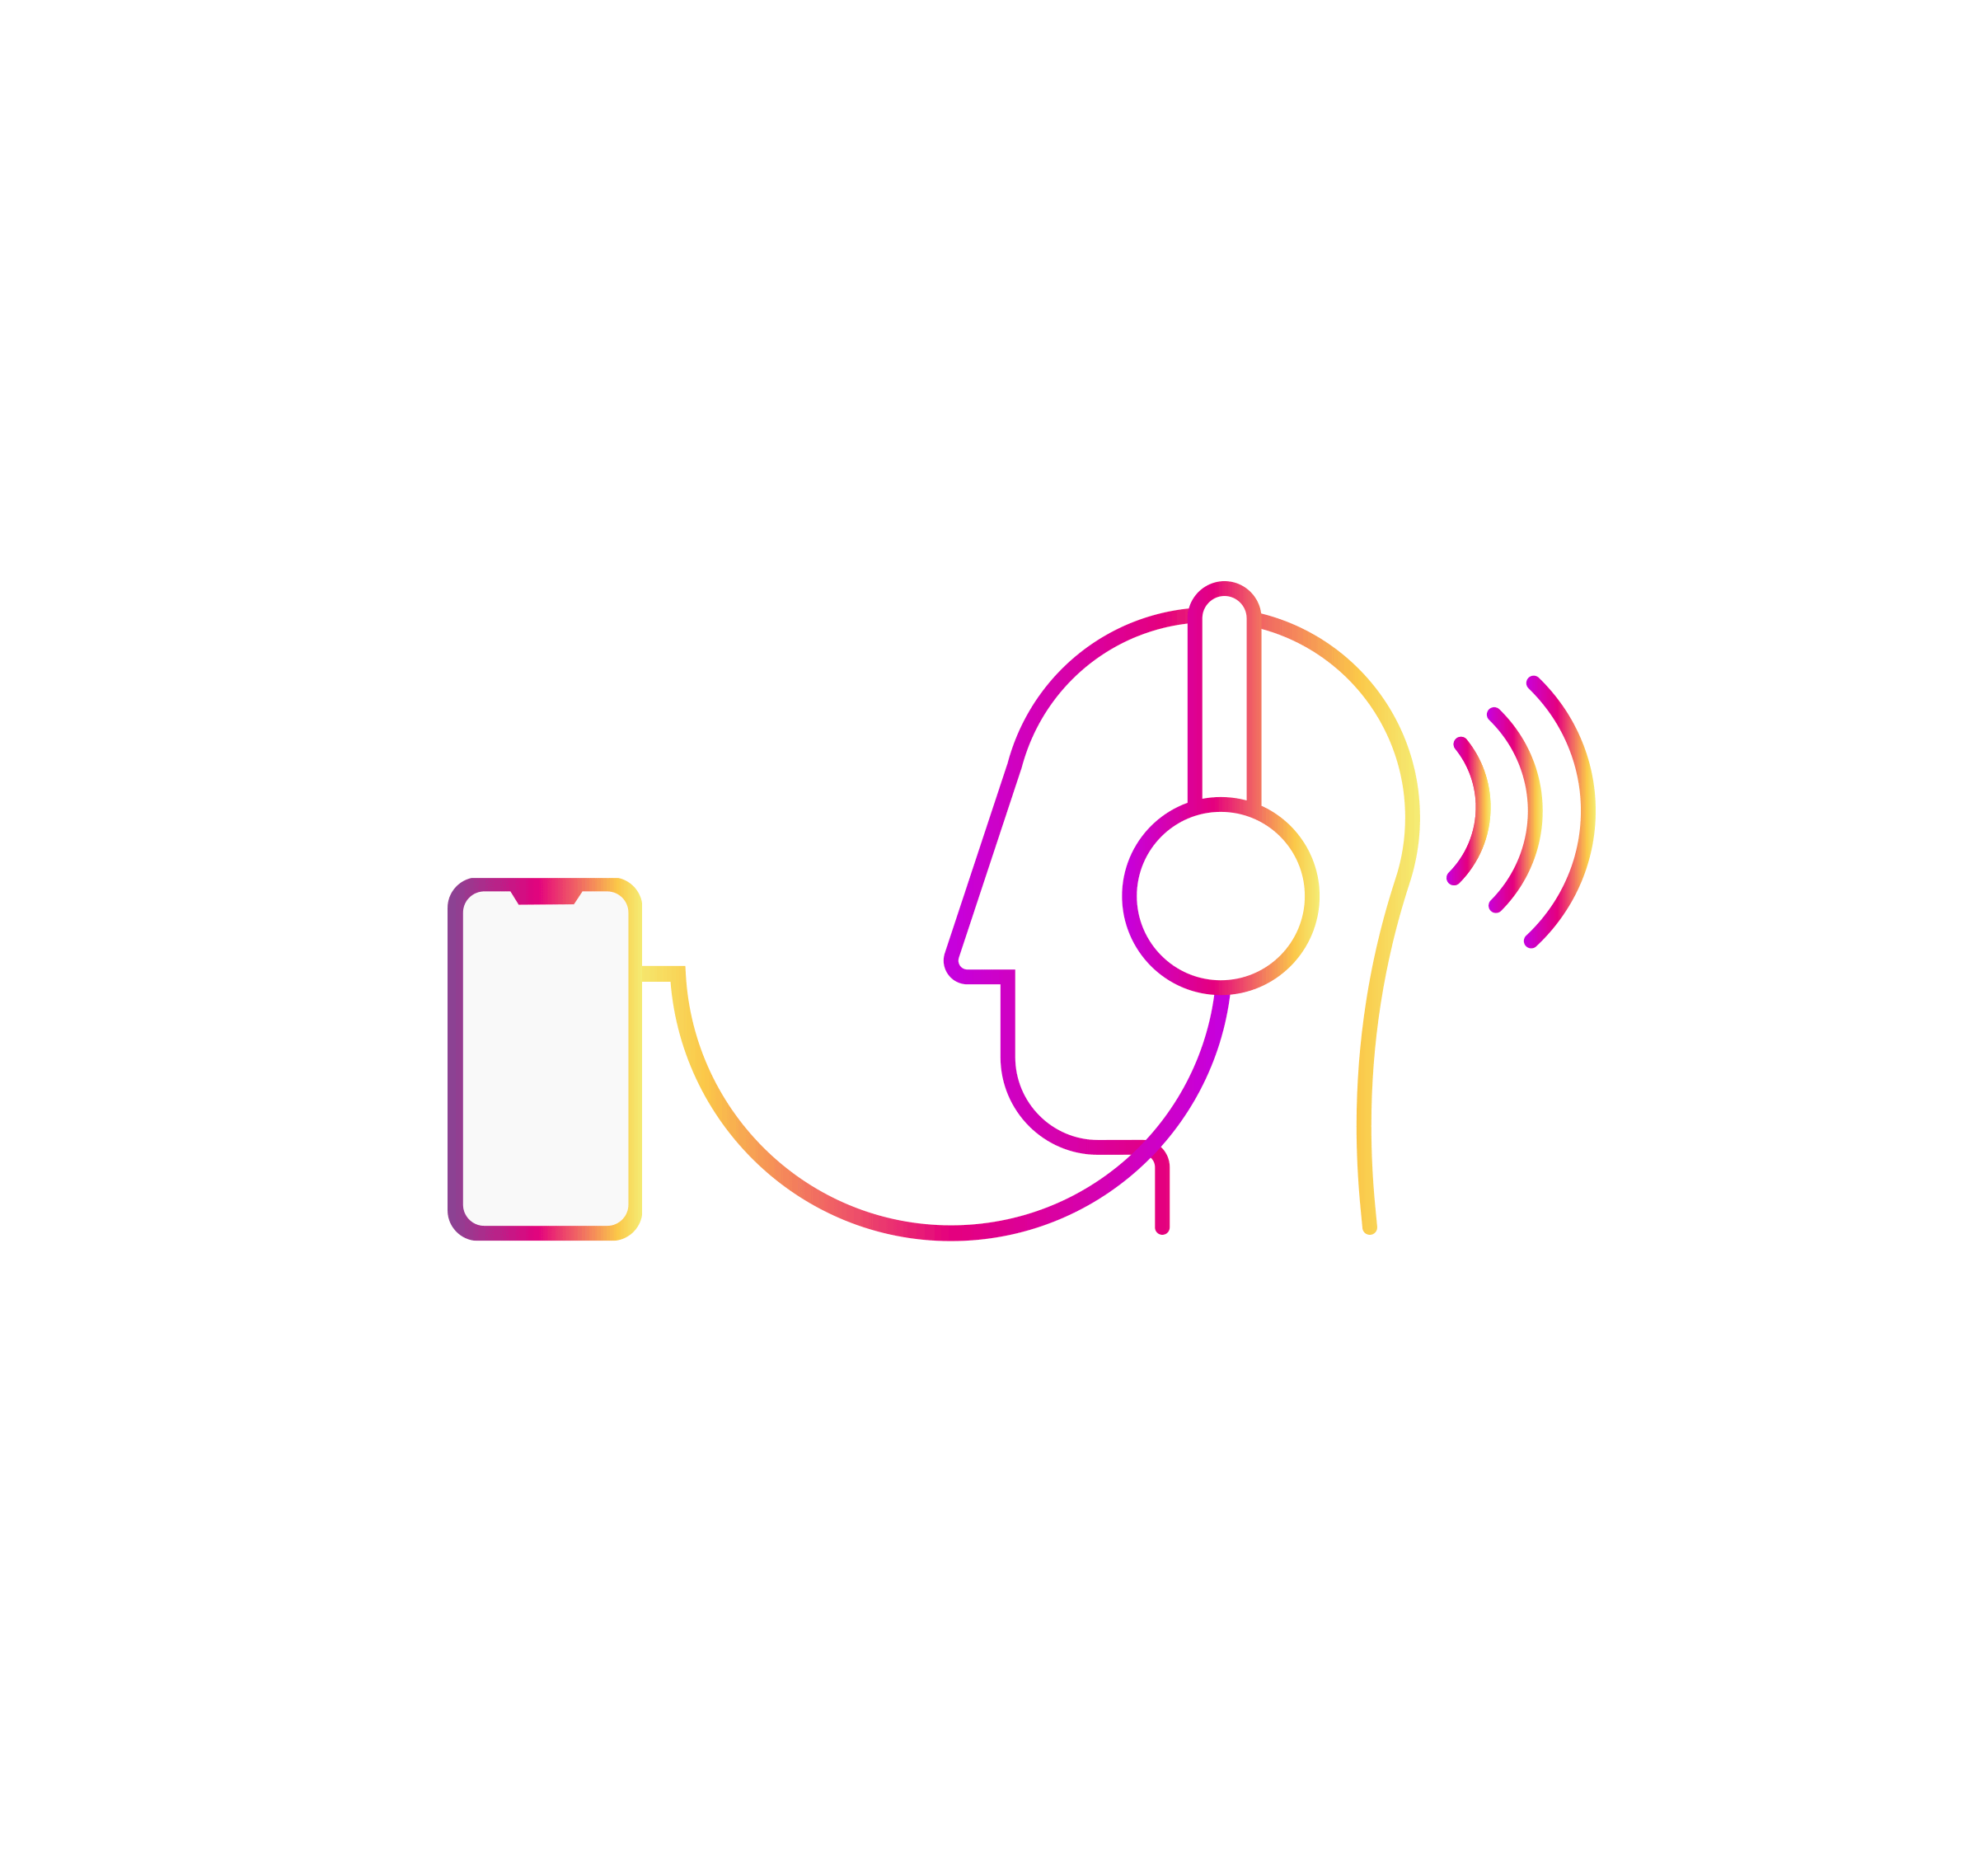 Creating noise pollution - The aim was to push the sensory audio experience as far as possible and evoke a sense of complete urgency, stress and discomfort to the user, mirroring the distress of mental health diagnosees'.